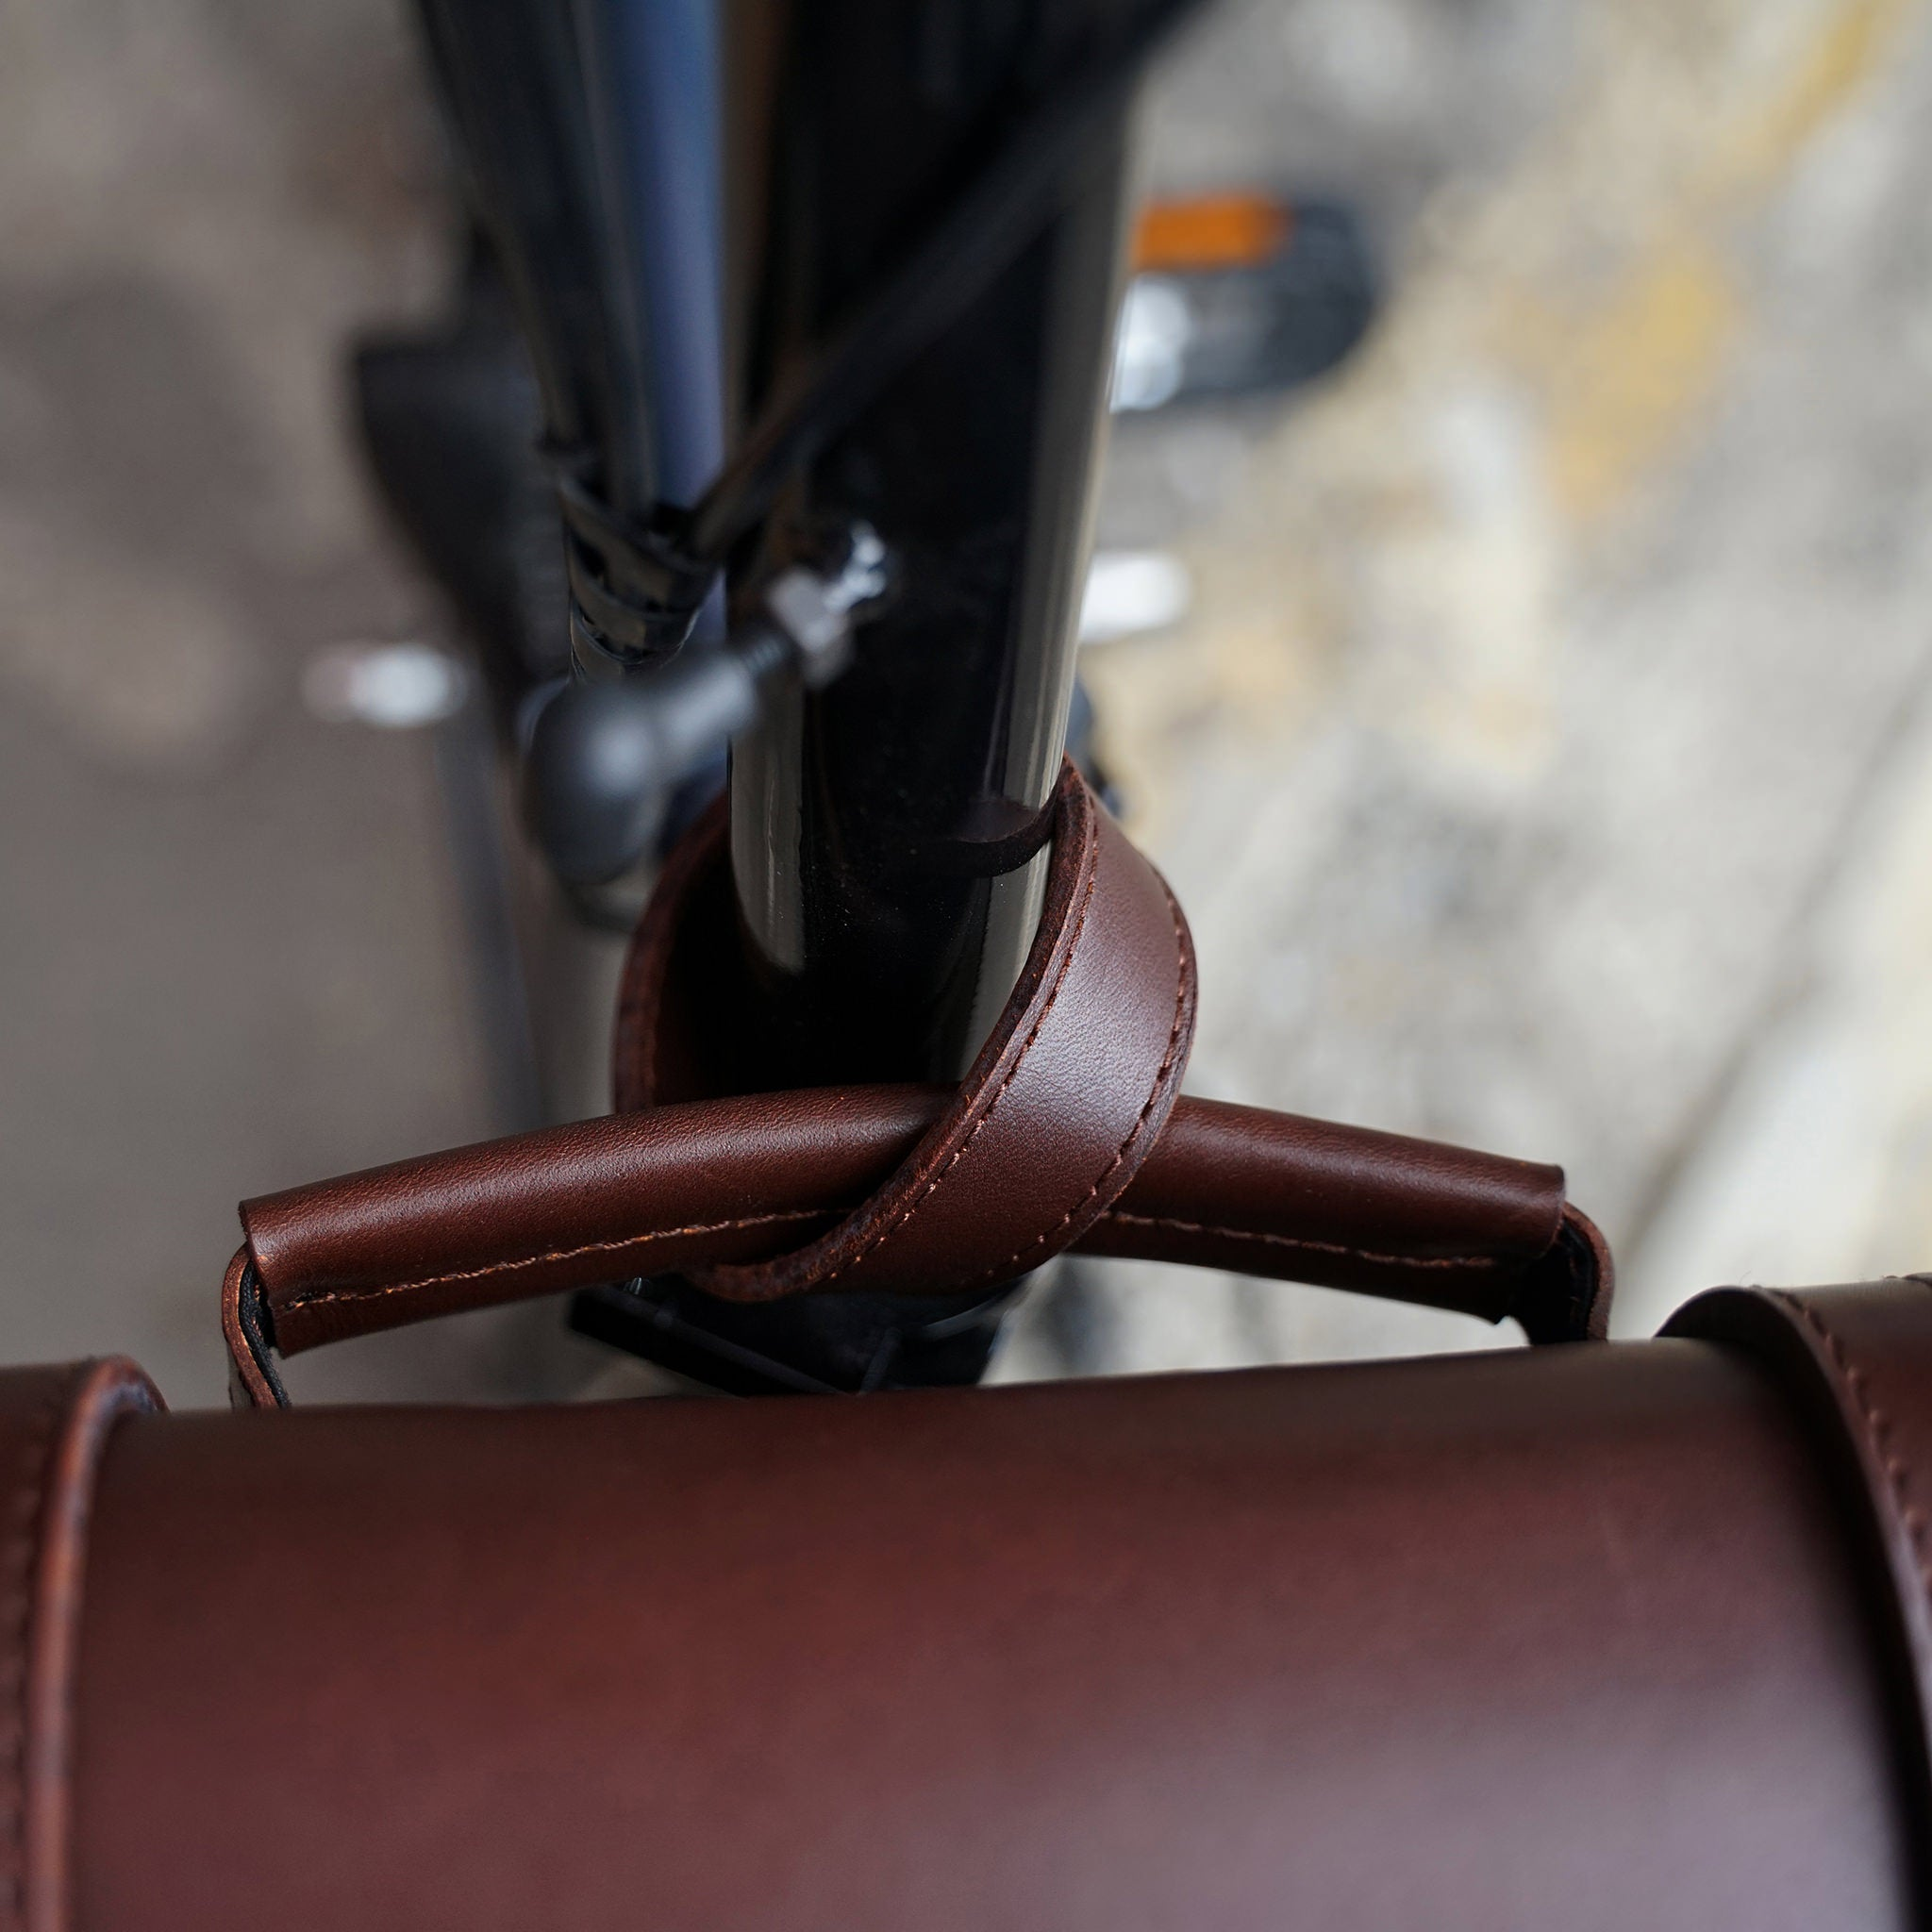 A strap is used to tie the bag/s handle or body strap to your bike.